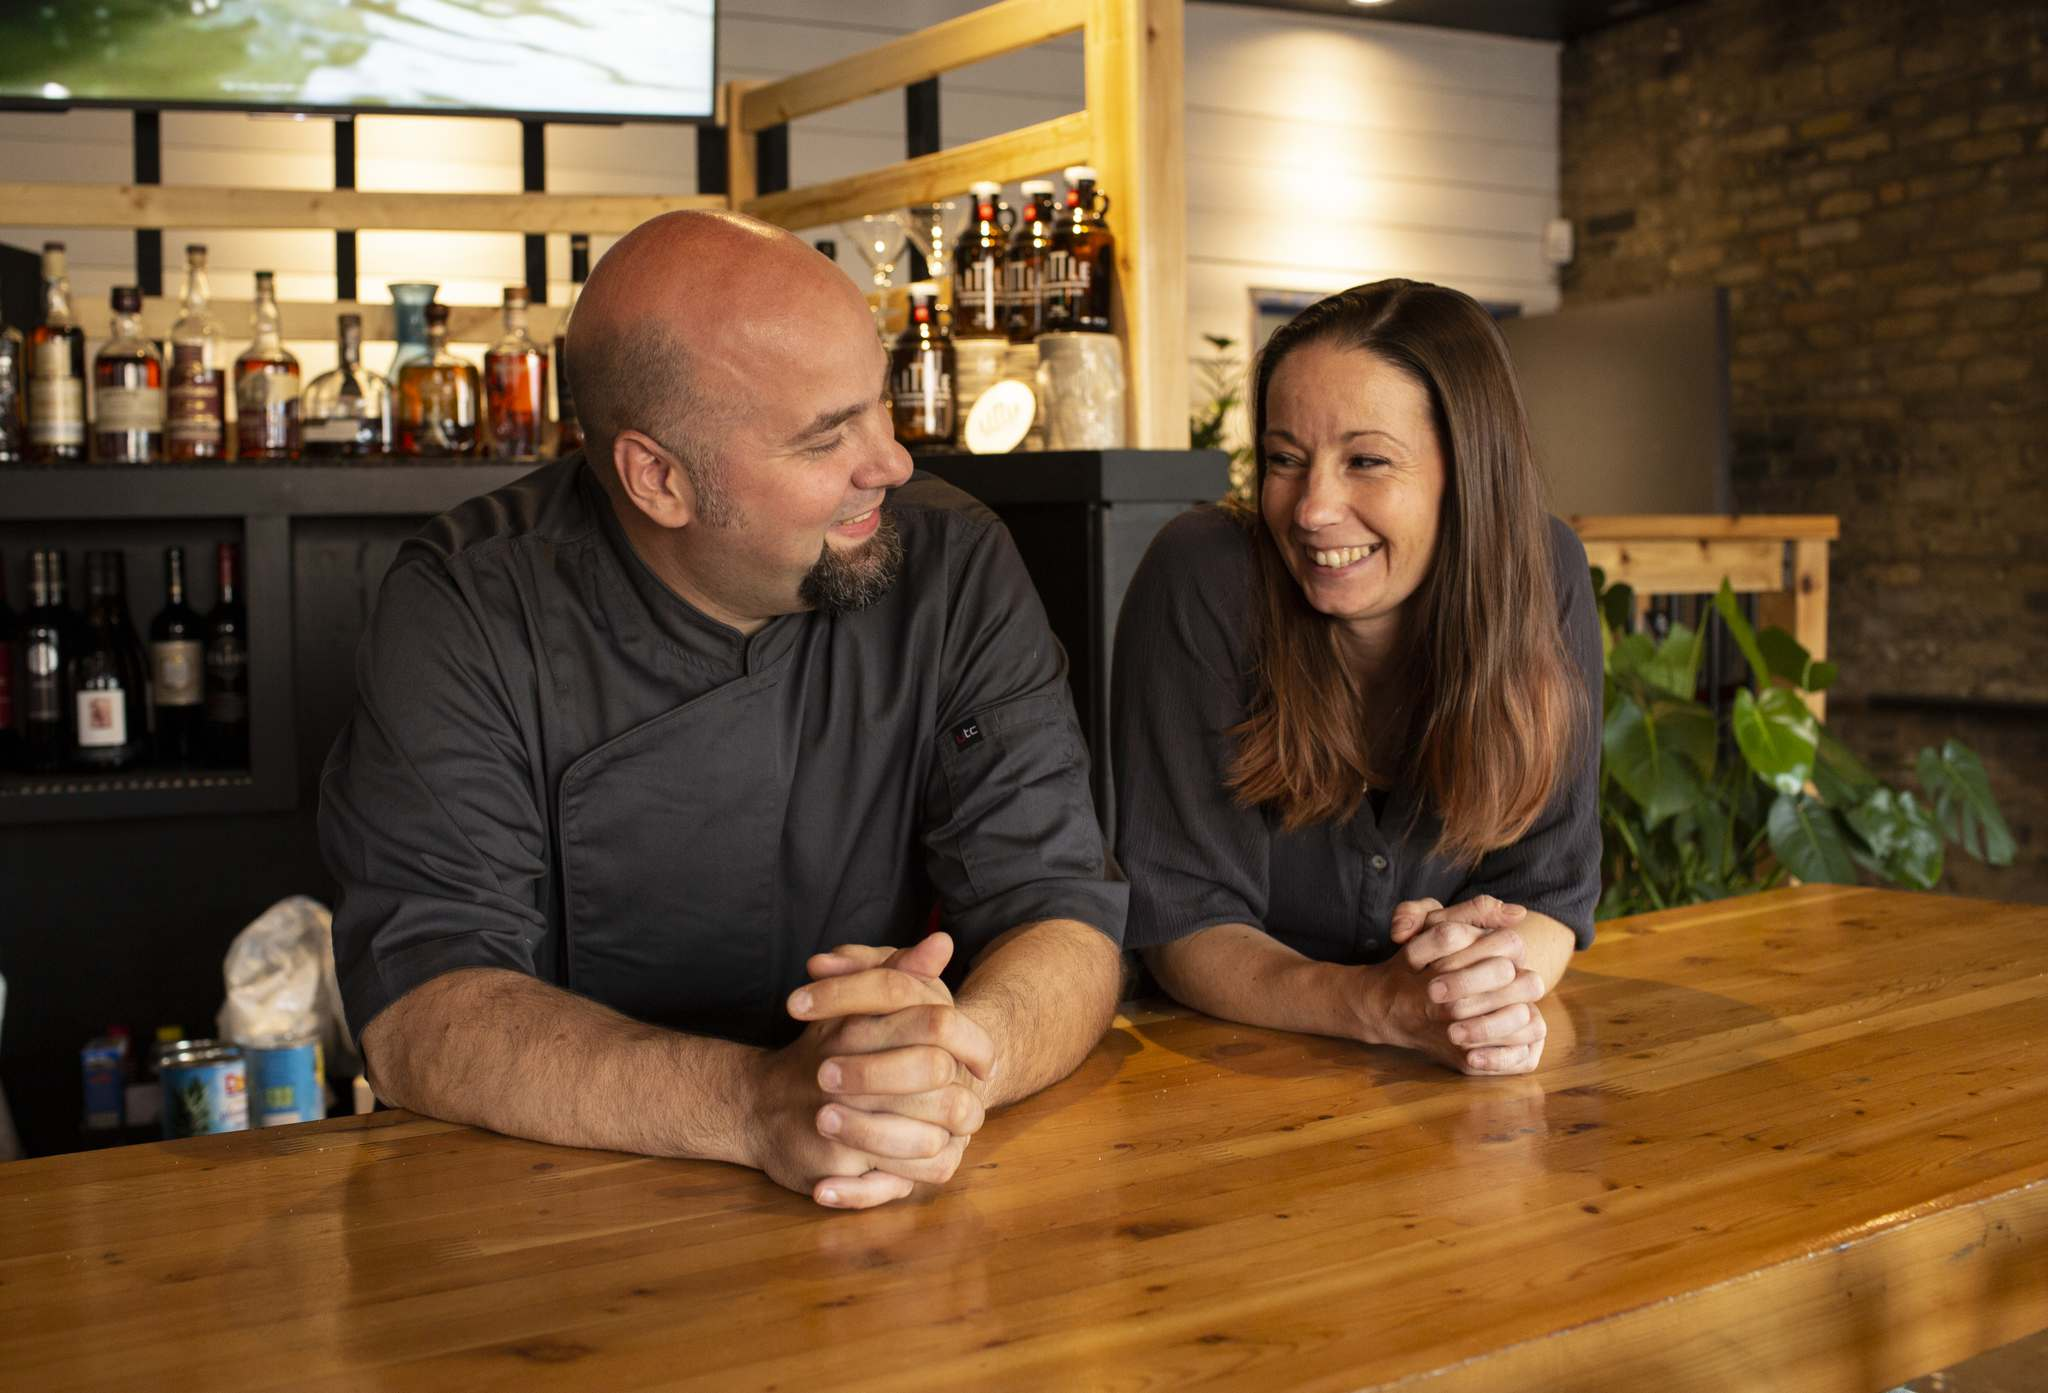 Co-owners and spouses Peter Vlahos, the head chef, and Samantha Vlahos of Pete's Place in Osborne Village. (Andrew Ryan / Winnipeg Free Press)